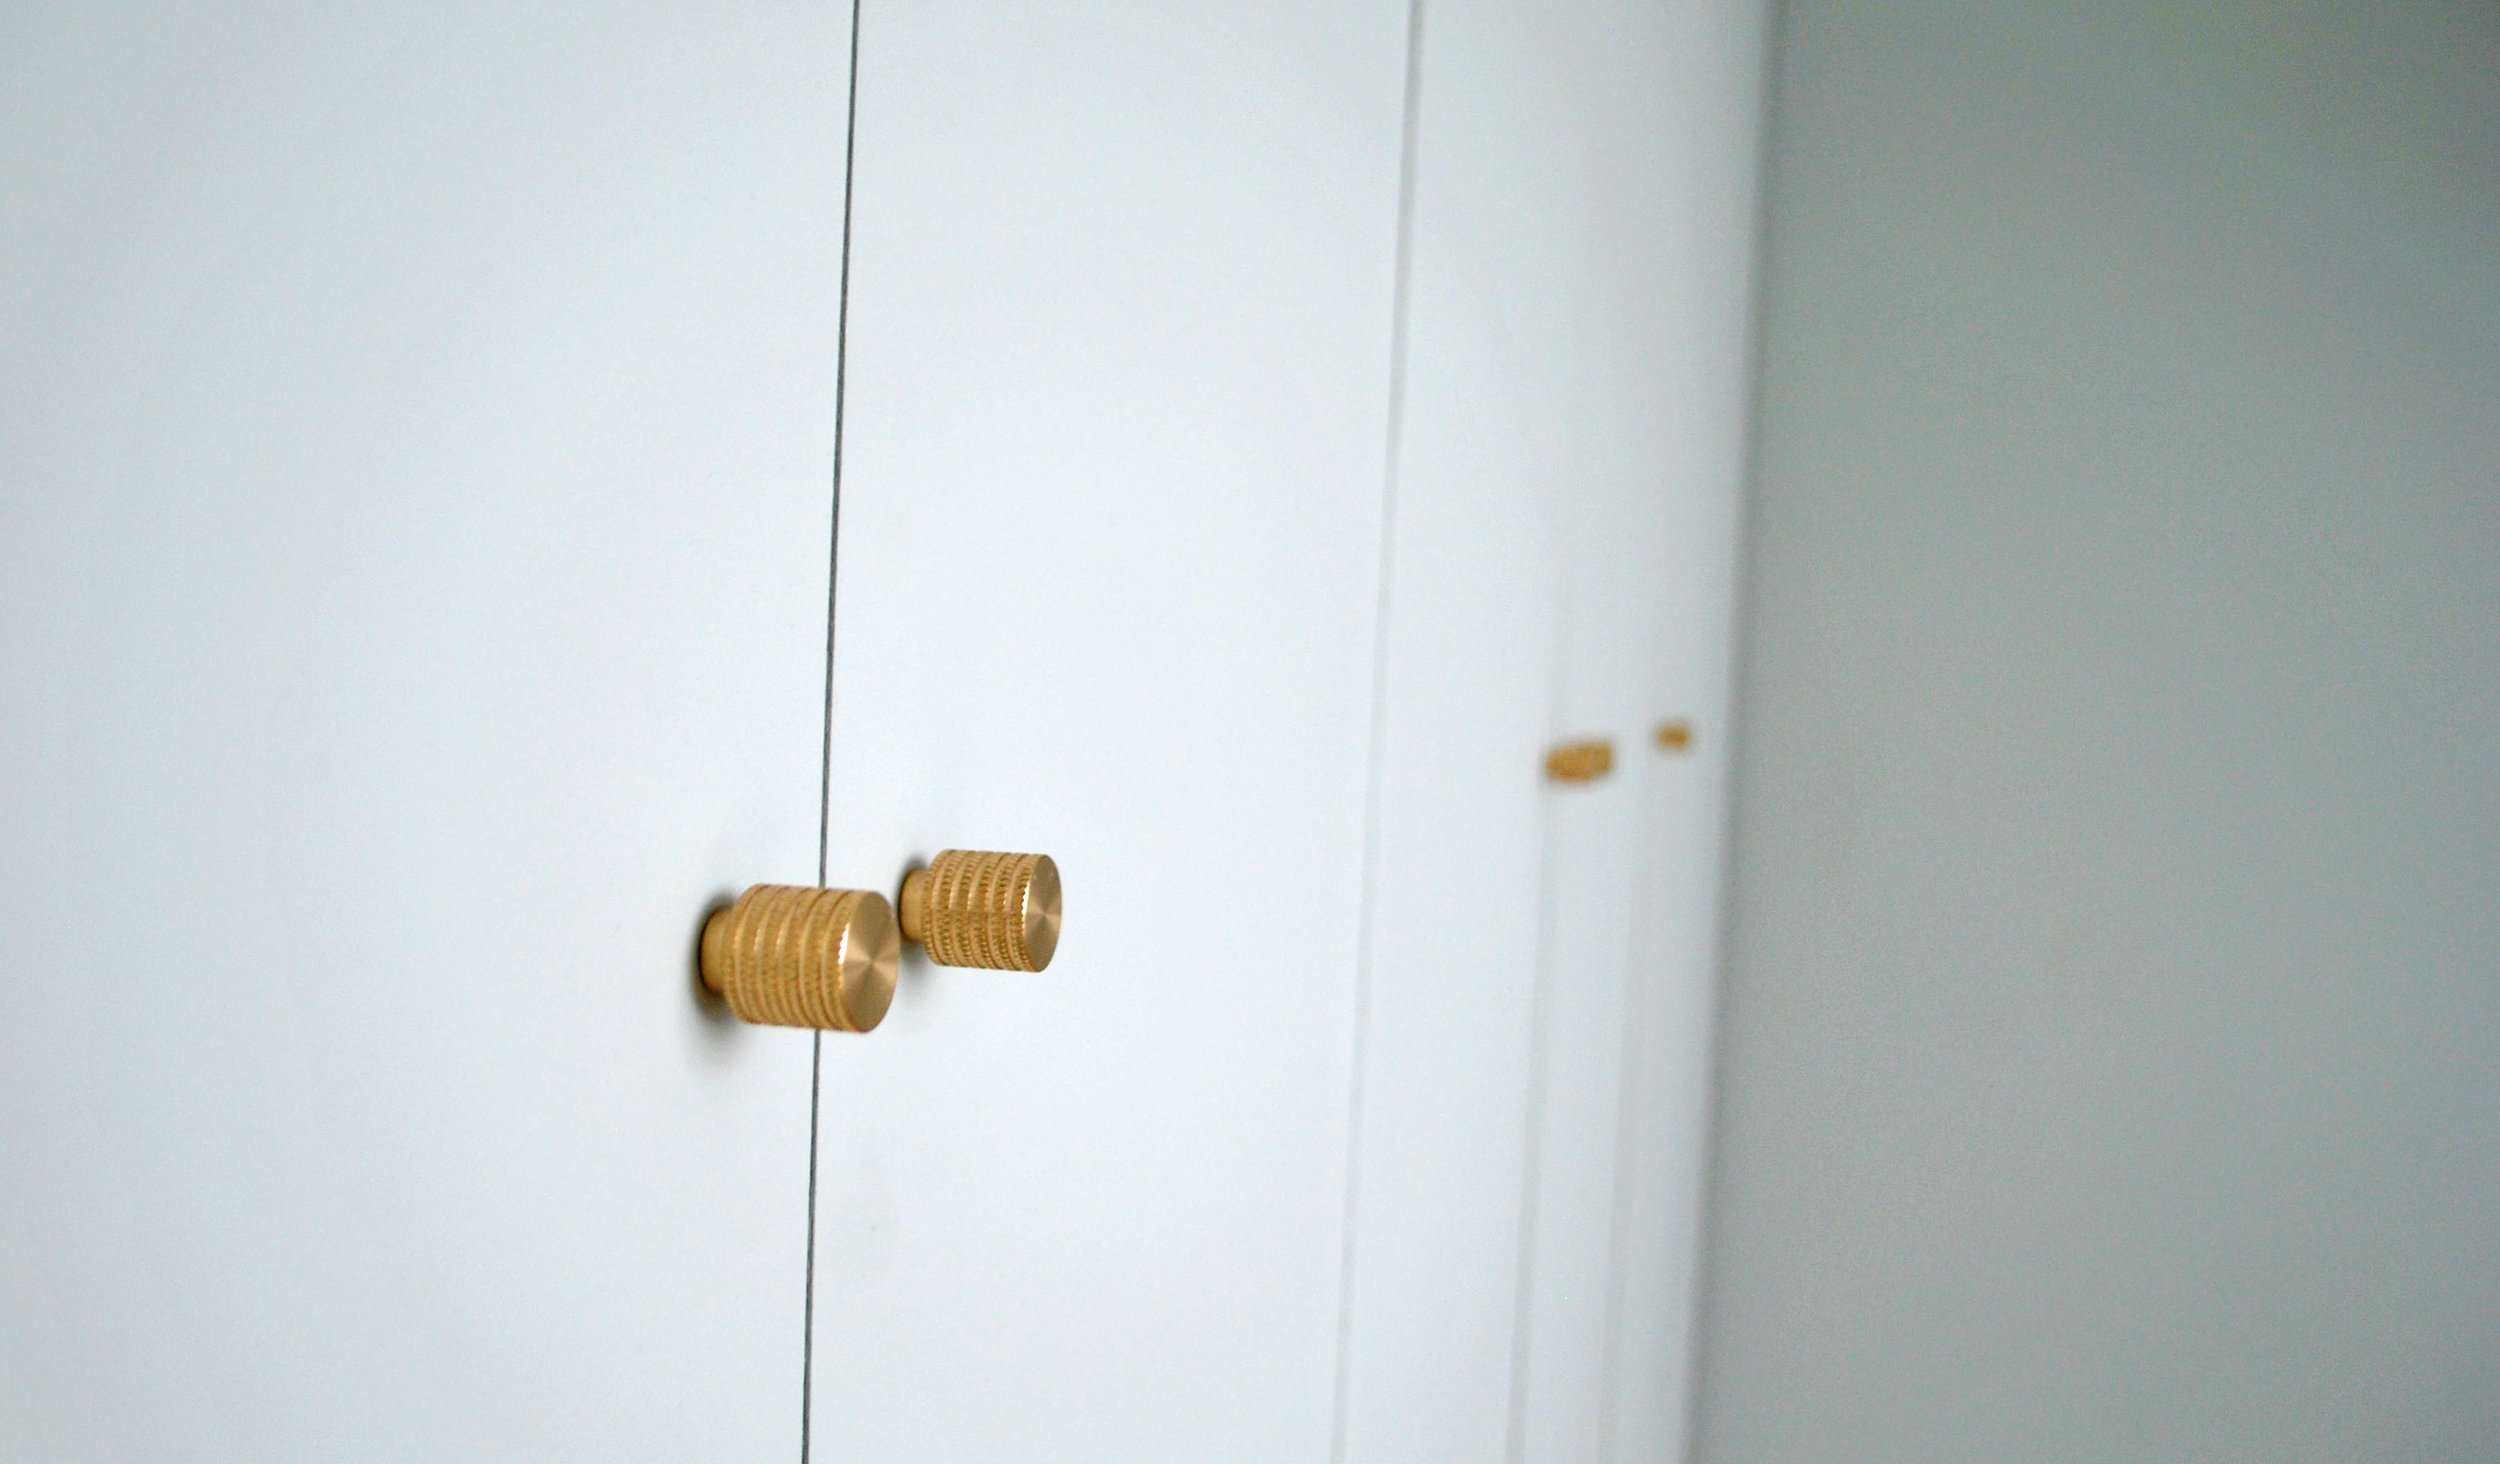 The door knobs are the  Avant Garde Knurled knobs in raw brass  by Dowsing & Reynolds